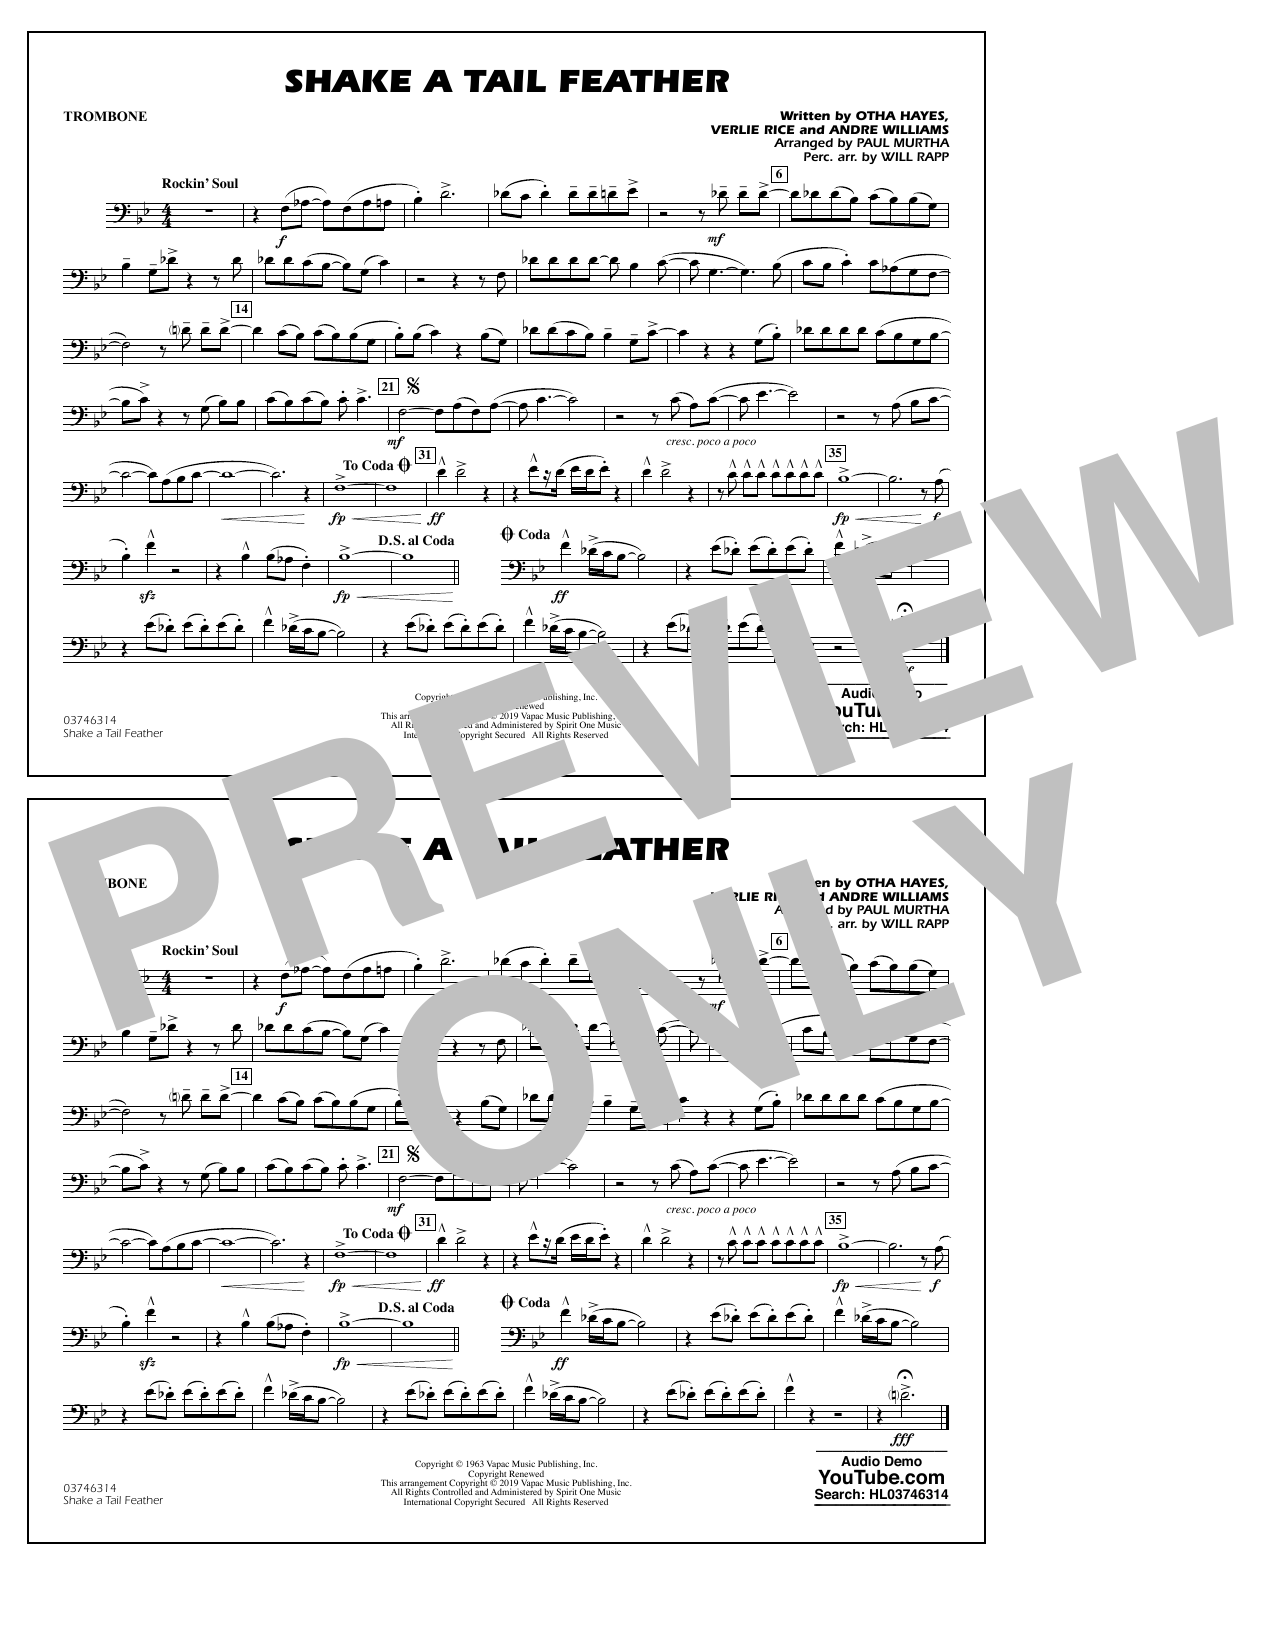 Ray Charles Shake a Tail Feather (arr. Paul Murtha) - Trombone sheet music preview music notes and score for Marching Band including 1 page(s)